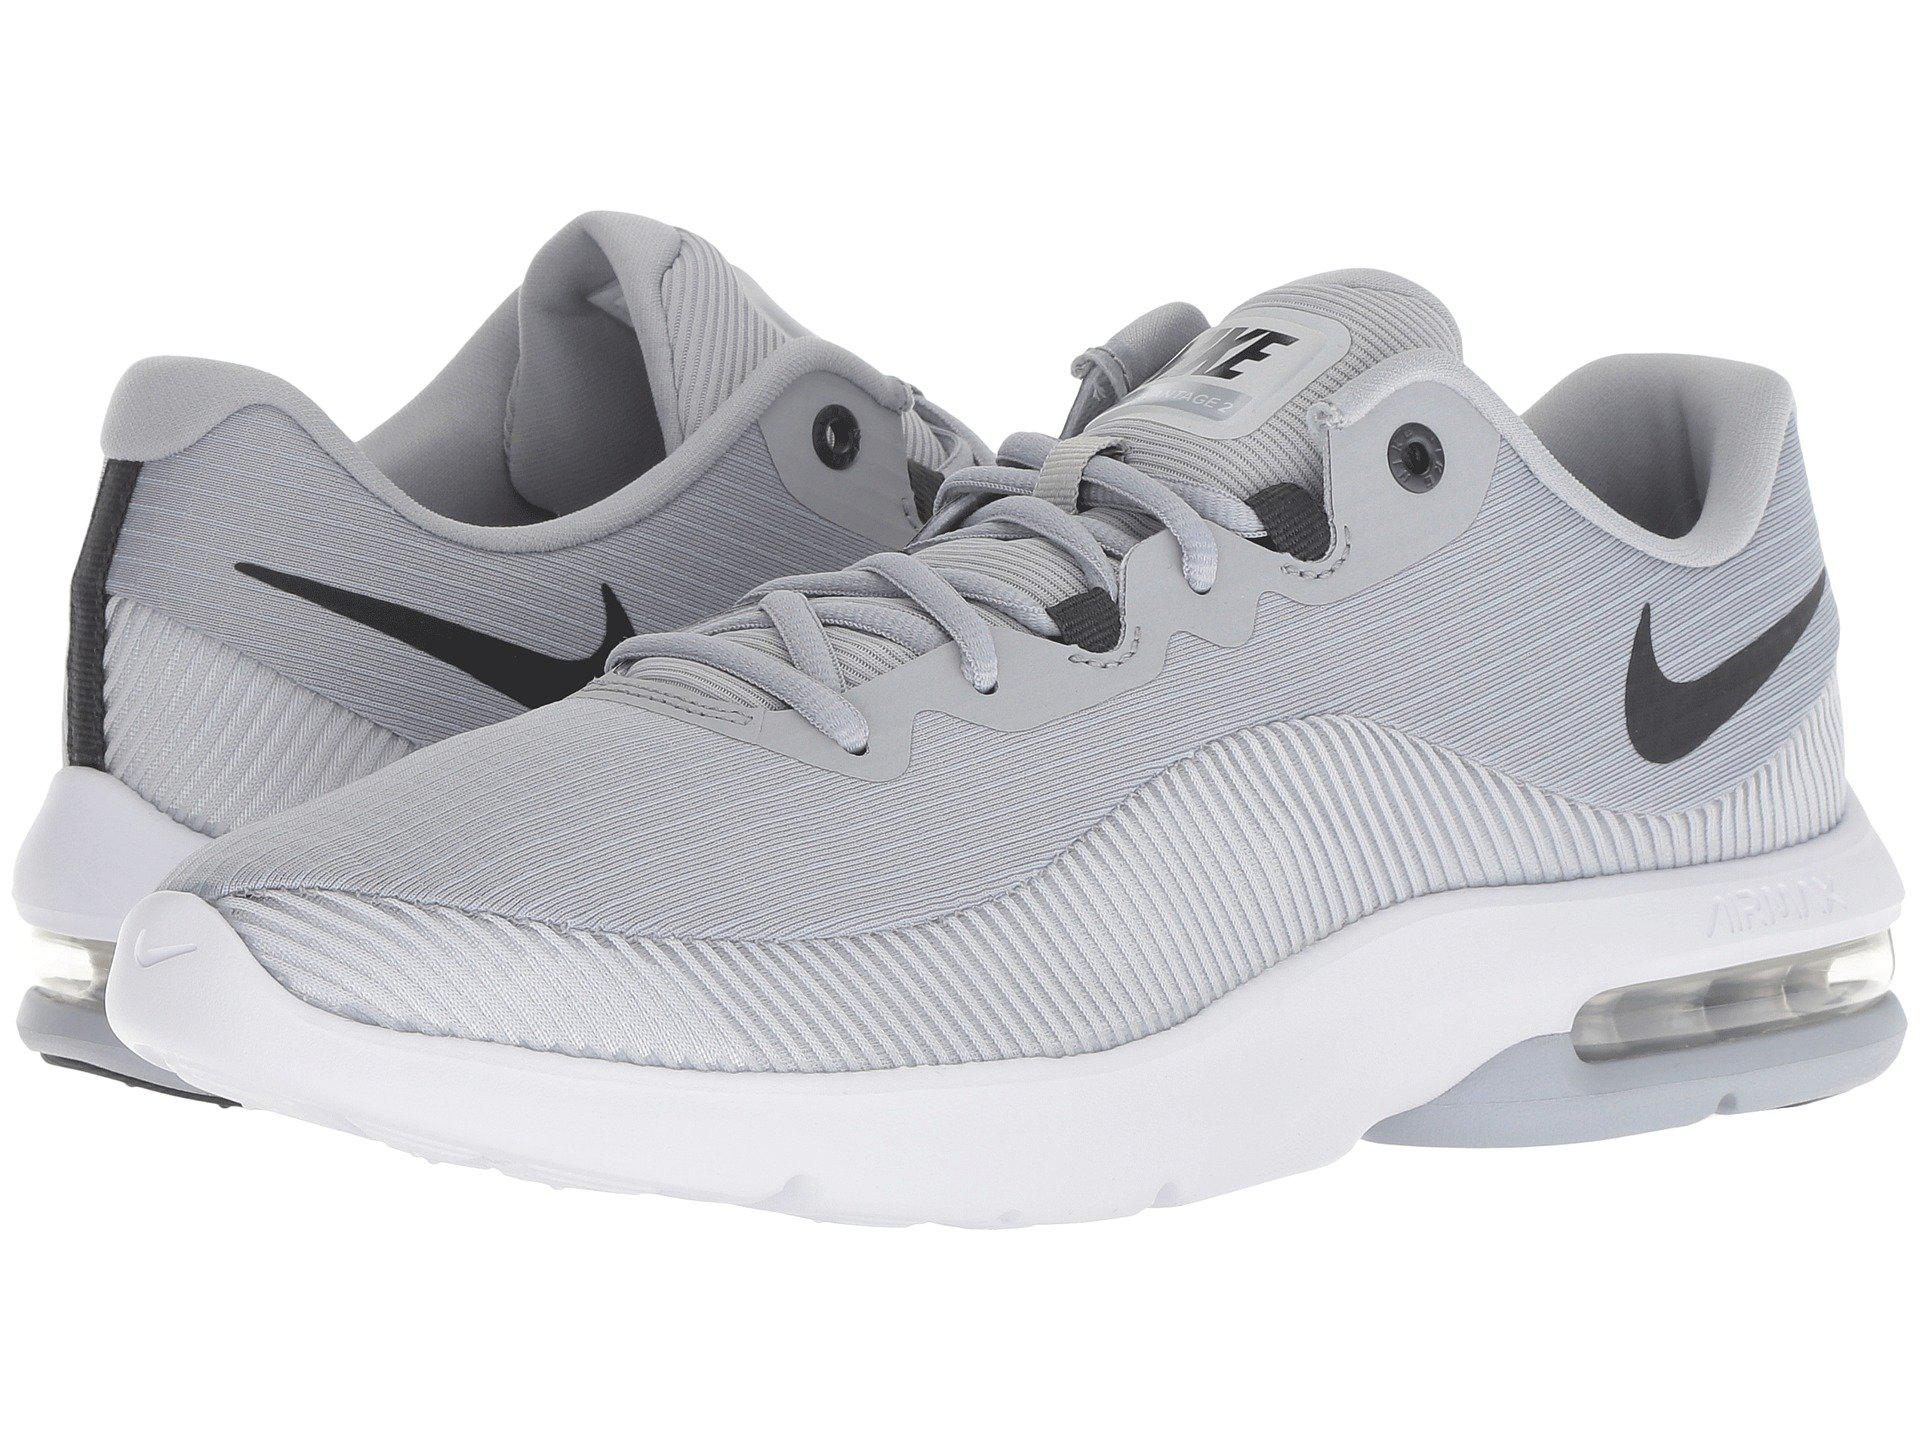 79565a5745f Lyst - Nike Air Max Advantage 2 (white black) Men s Running Shoes in ...